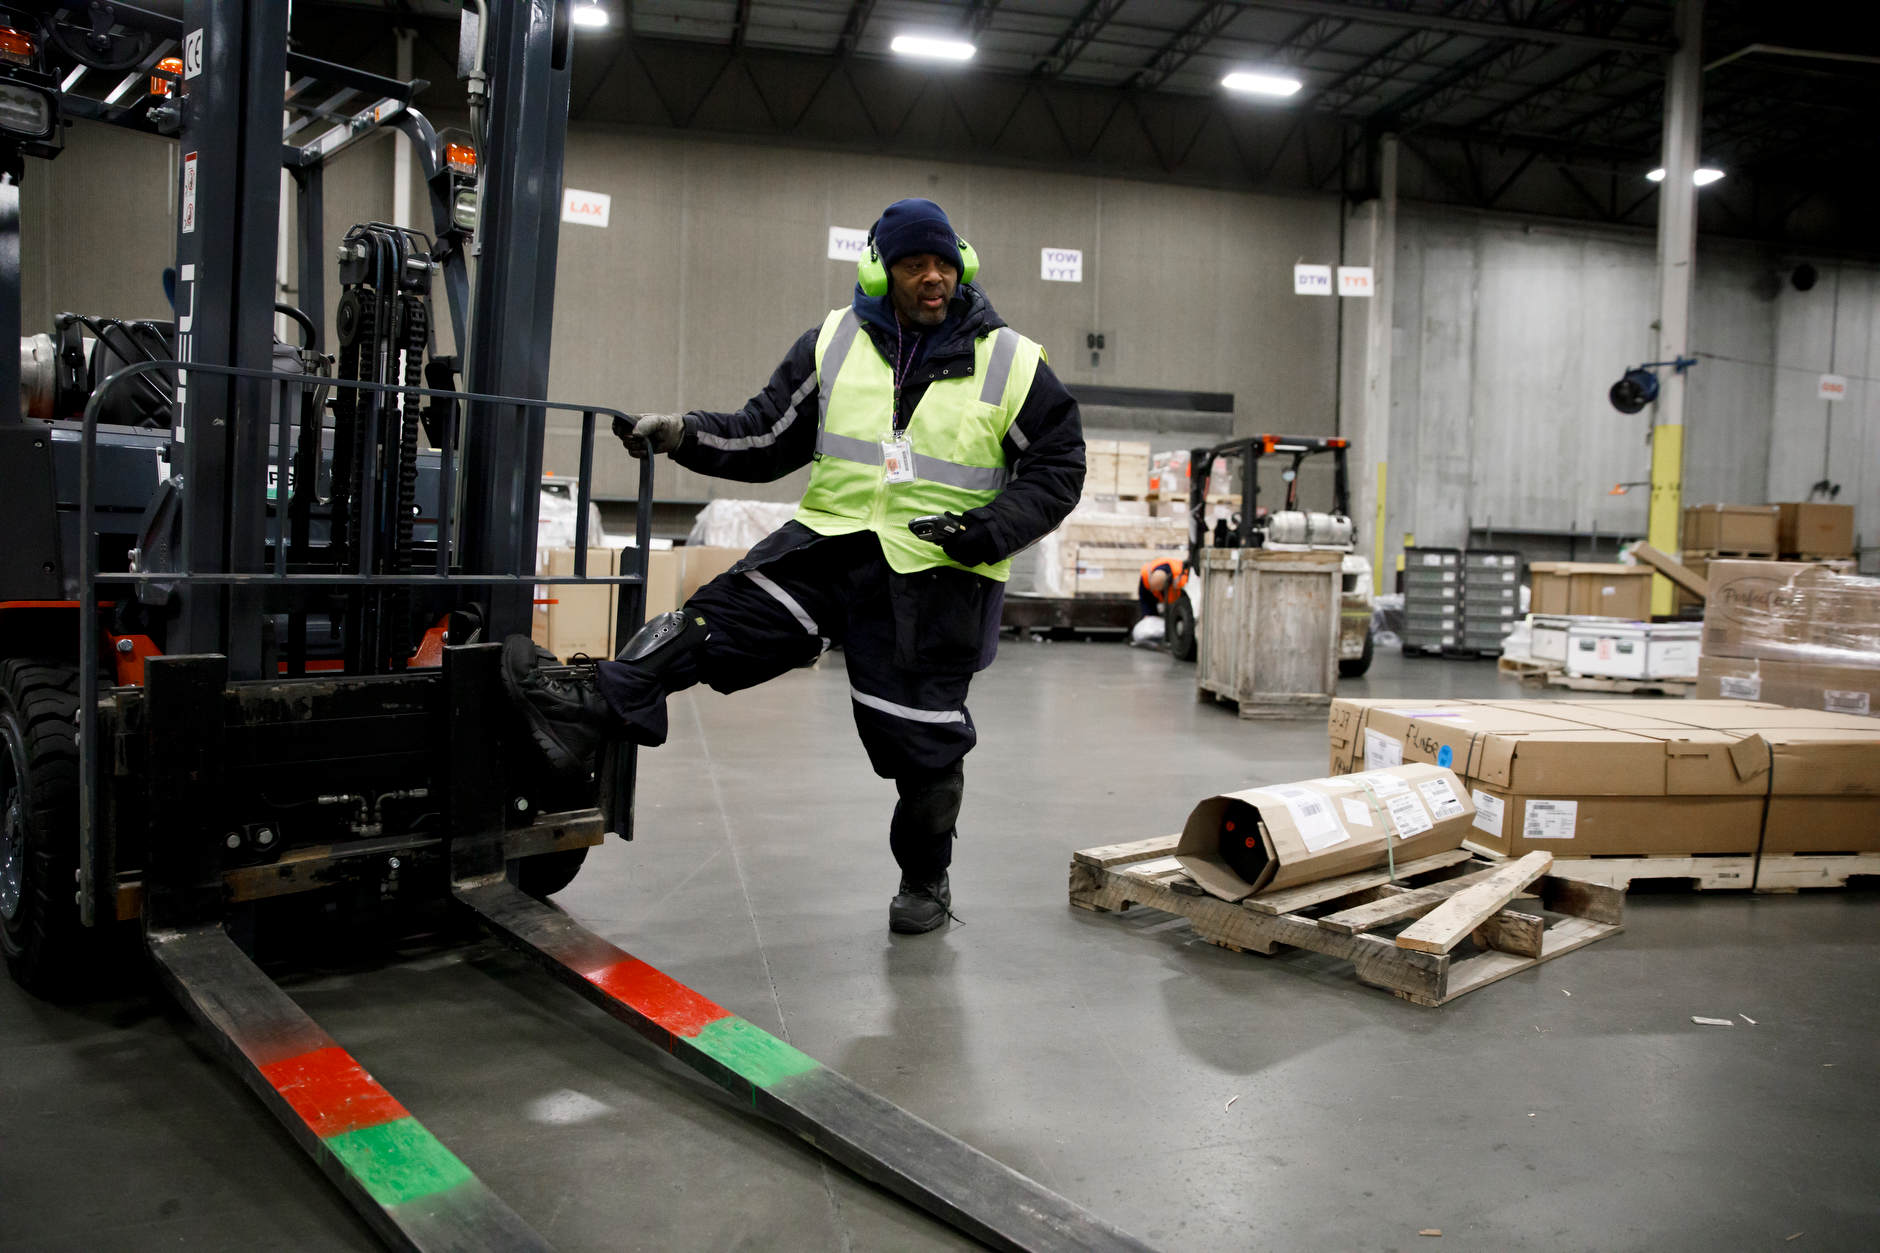 James Wilson, a FedEx material handler, uses a forklift to load a pallet of packages for shipment at the FedEx Express Hub in Indianapolis in the early morning hours of Wednesday, Feb. 27, 2019. (James Brosher for The Wall Street Journal)